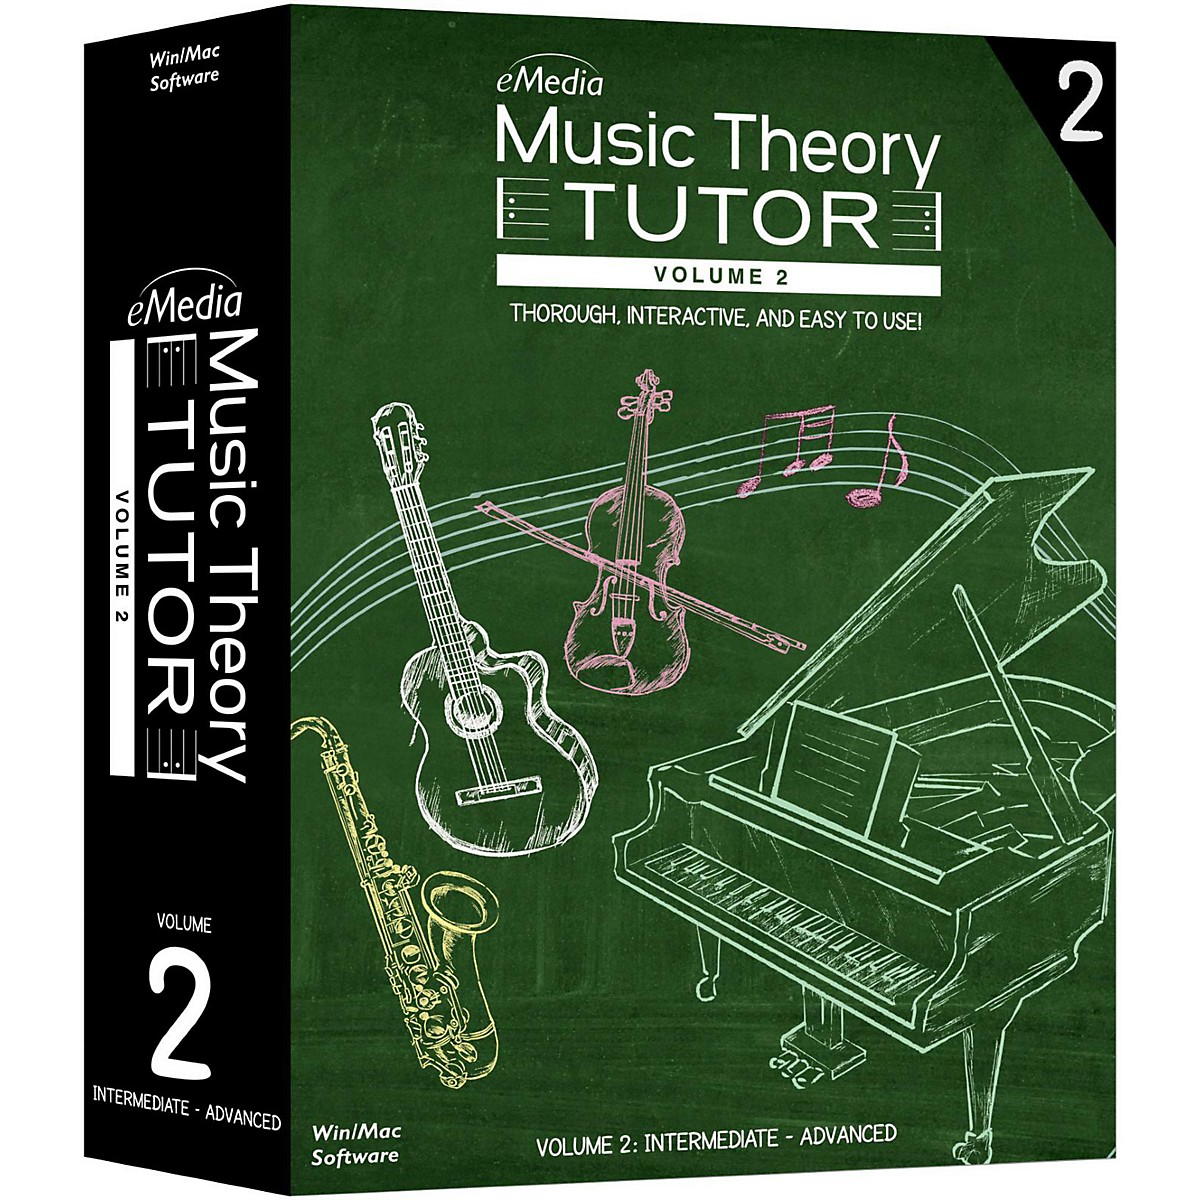 eMedia Music Theory Tutor Volume 2